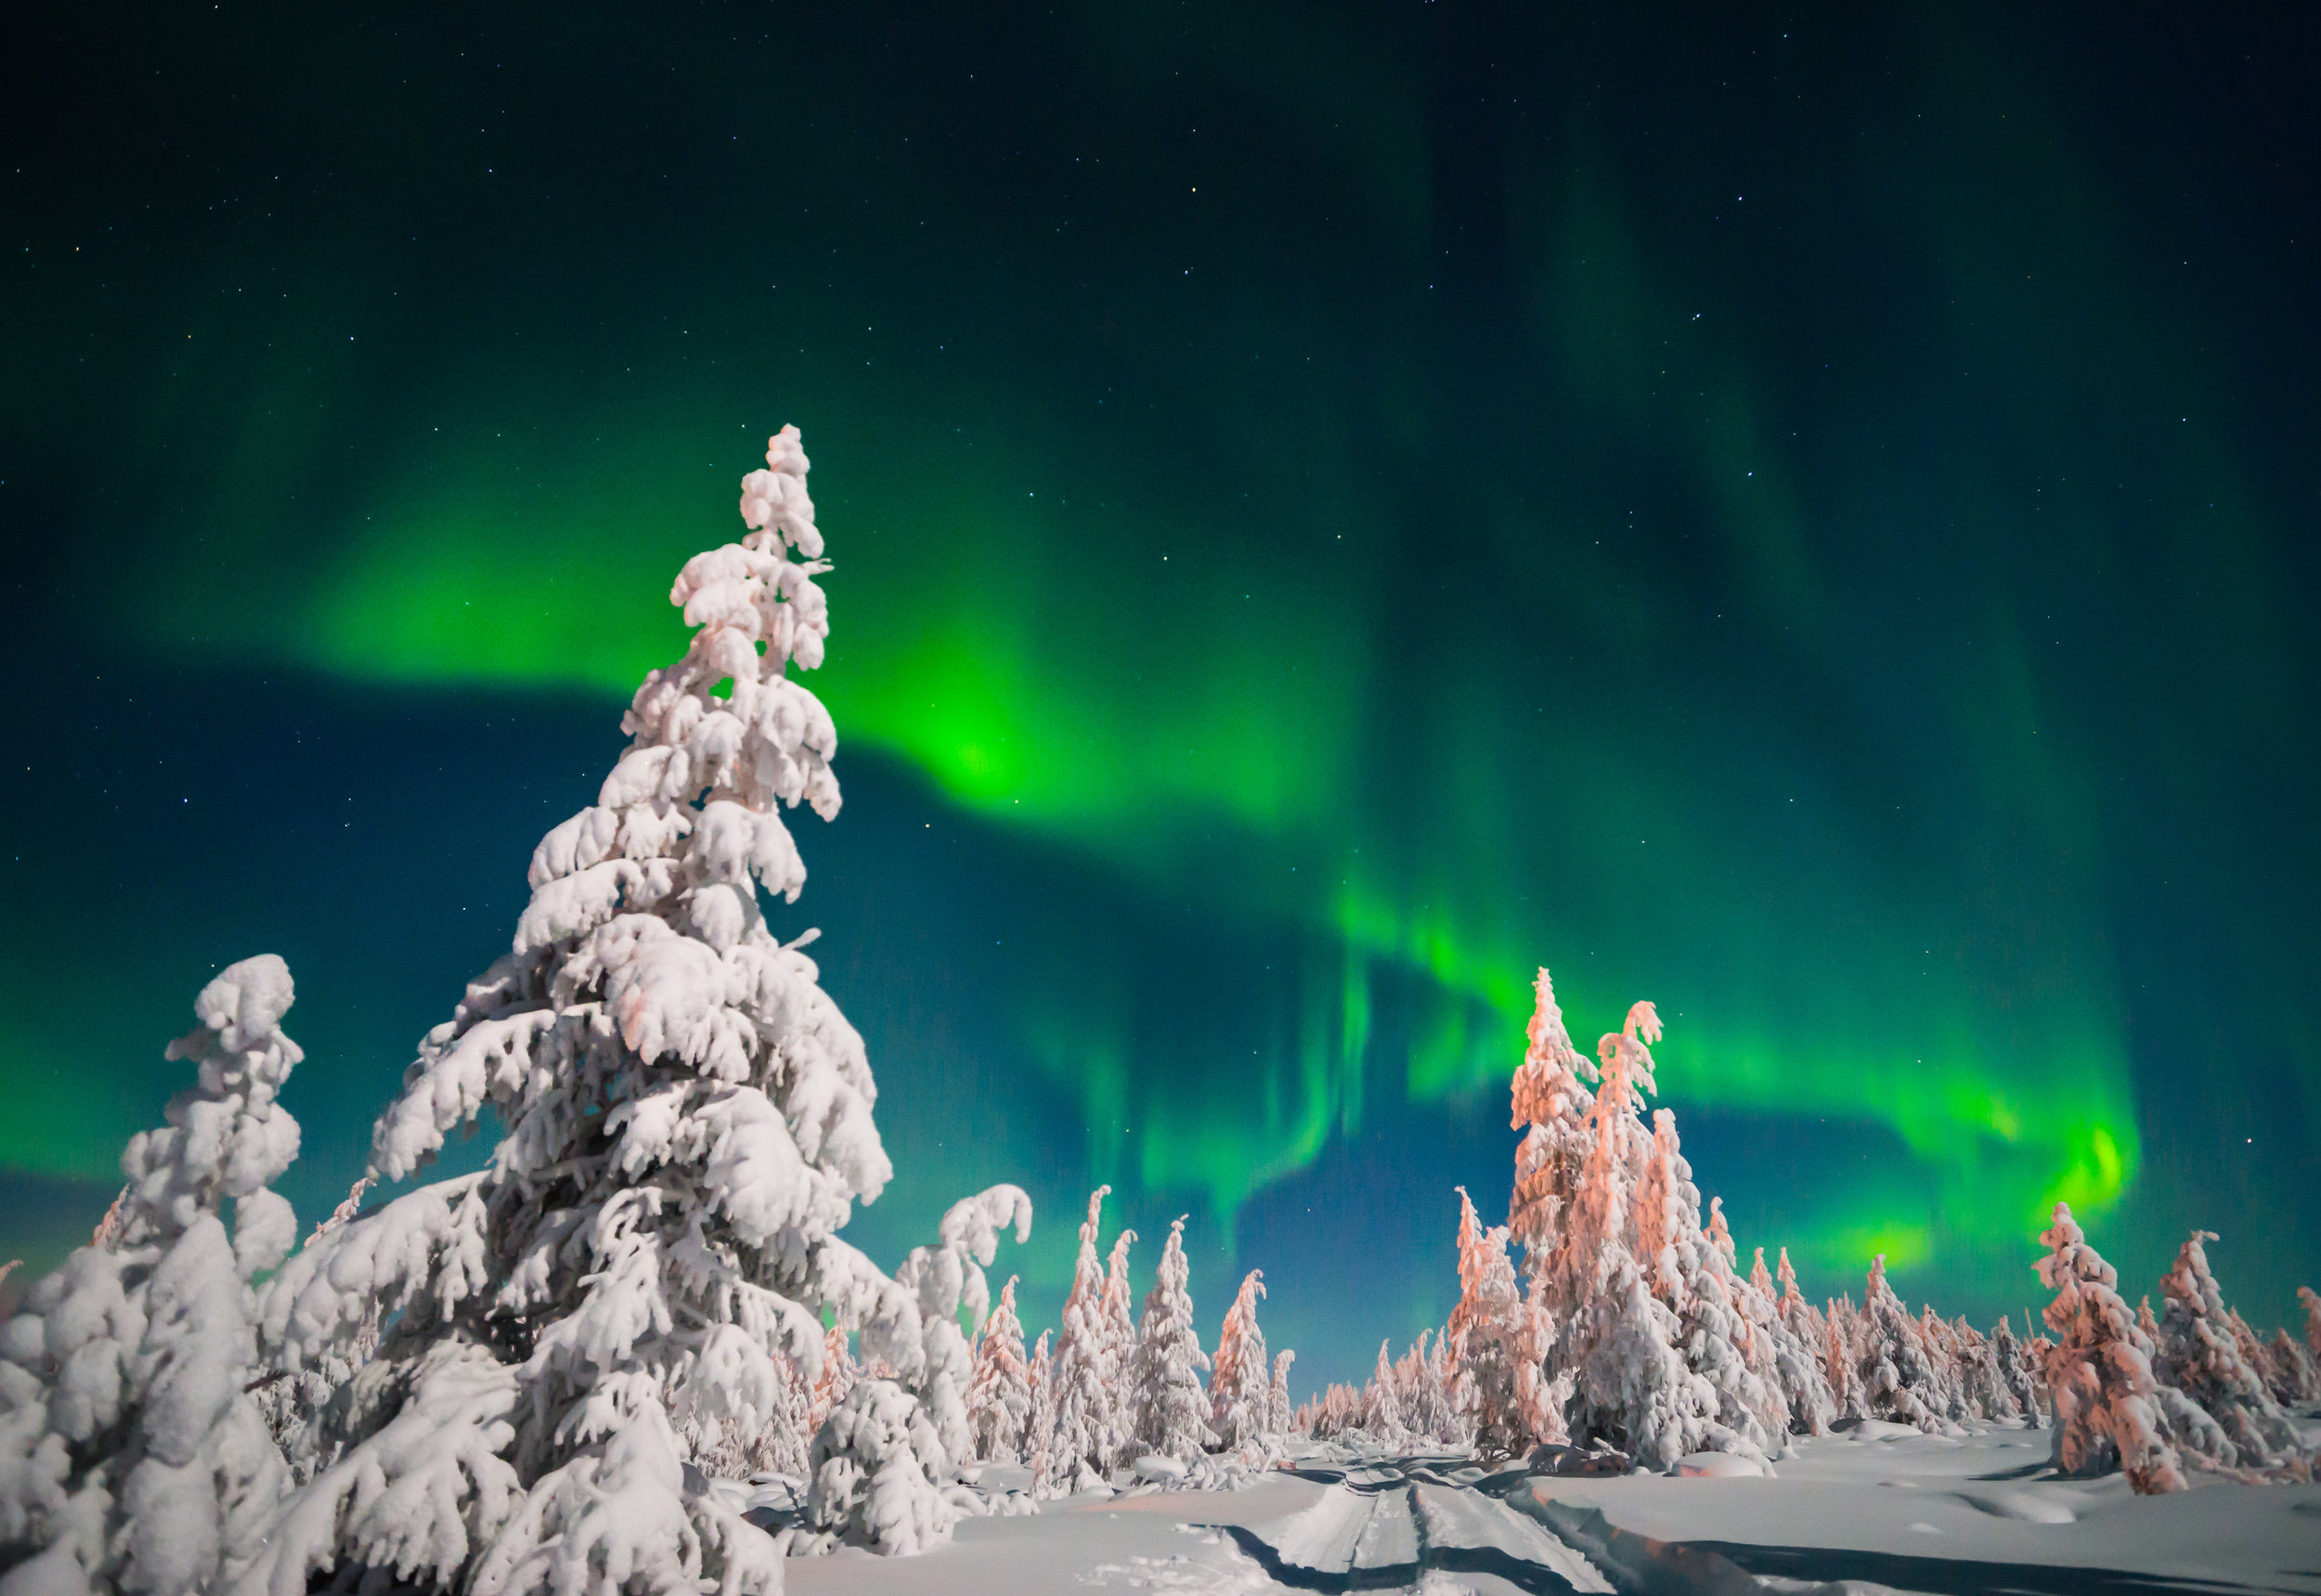 Watch and photograph the Northern Lights. Photo: Jamen Percy